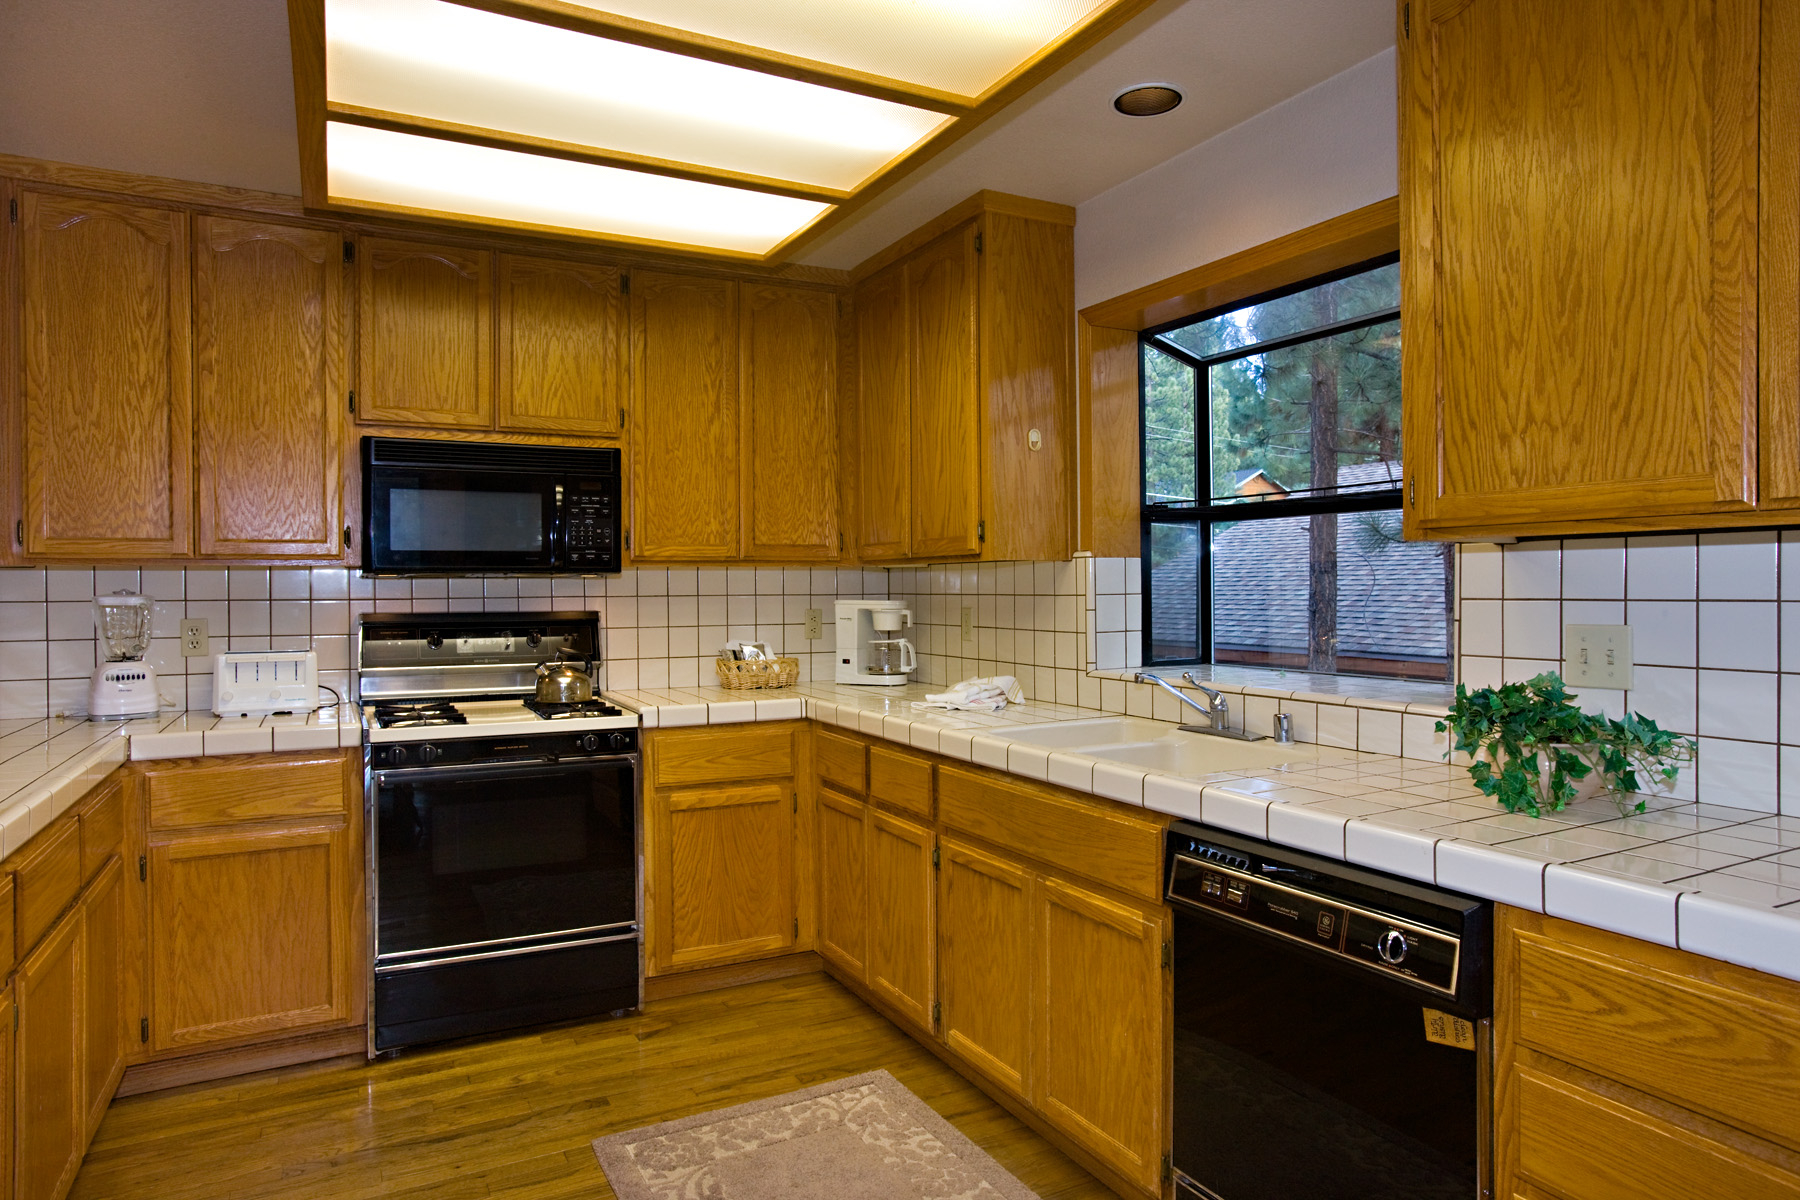 A comfortable, large working kitchen